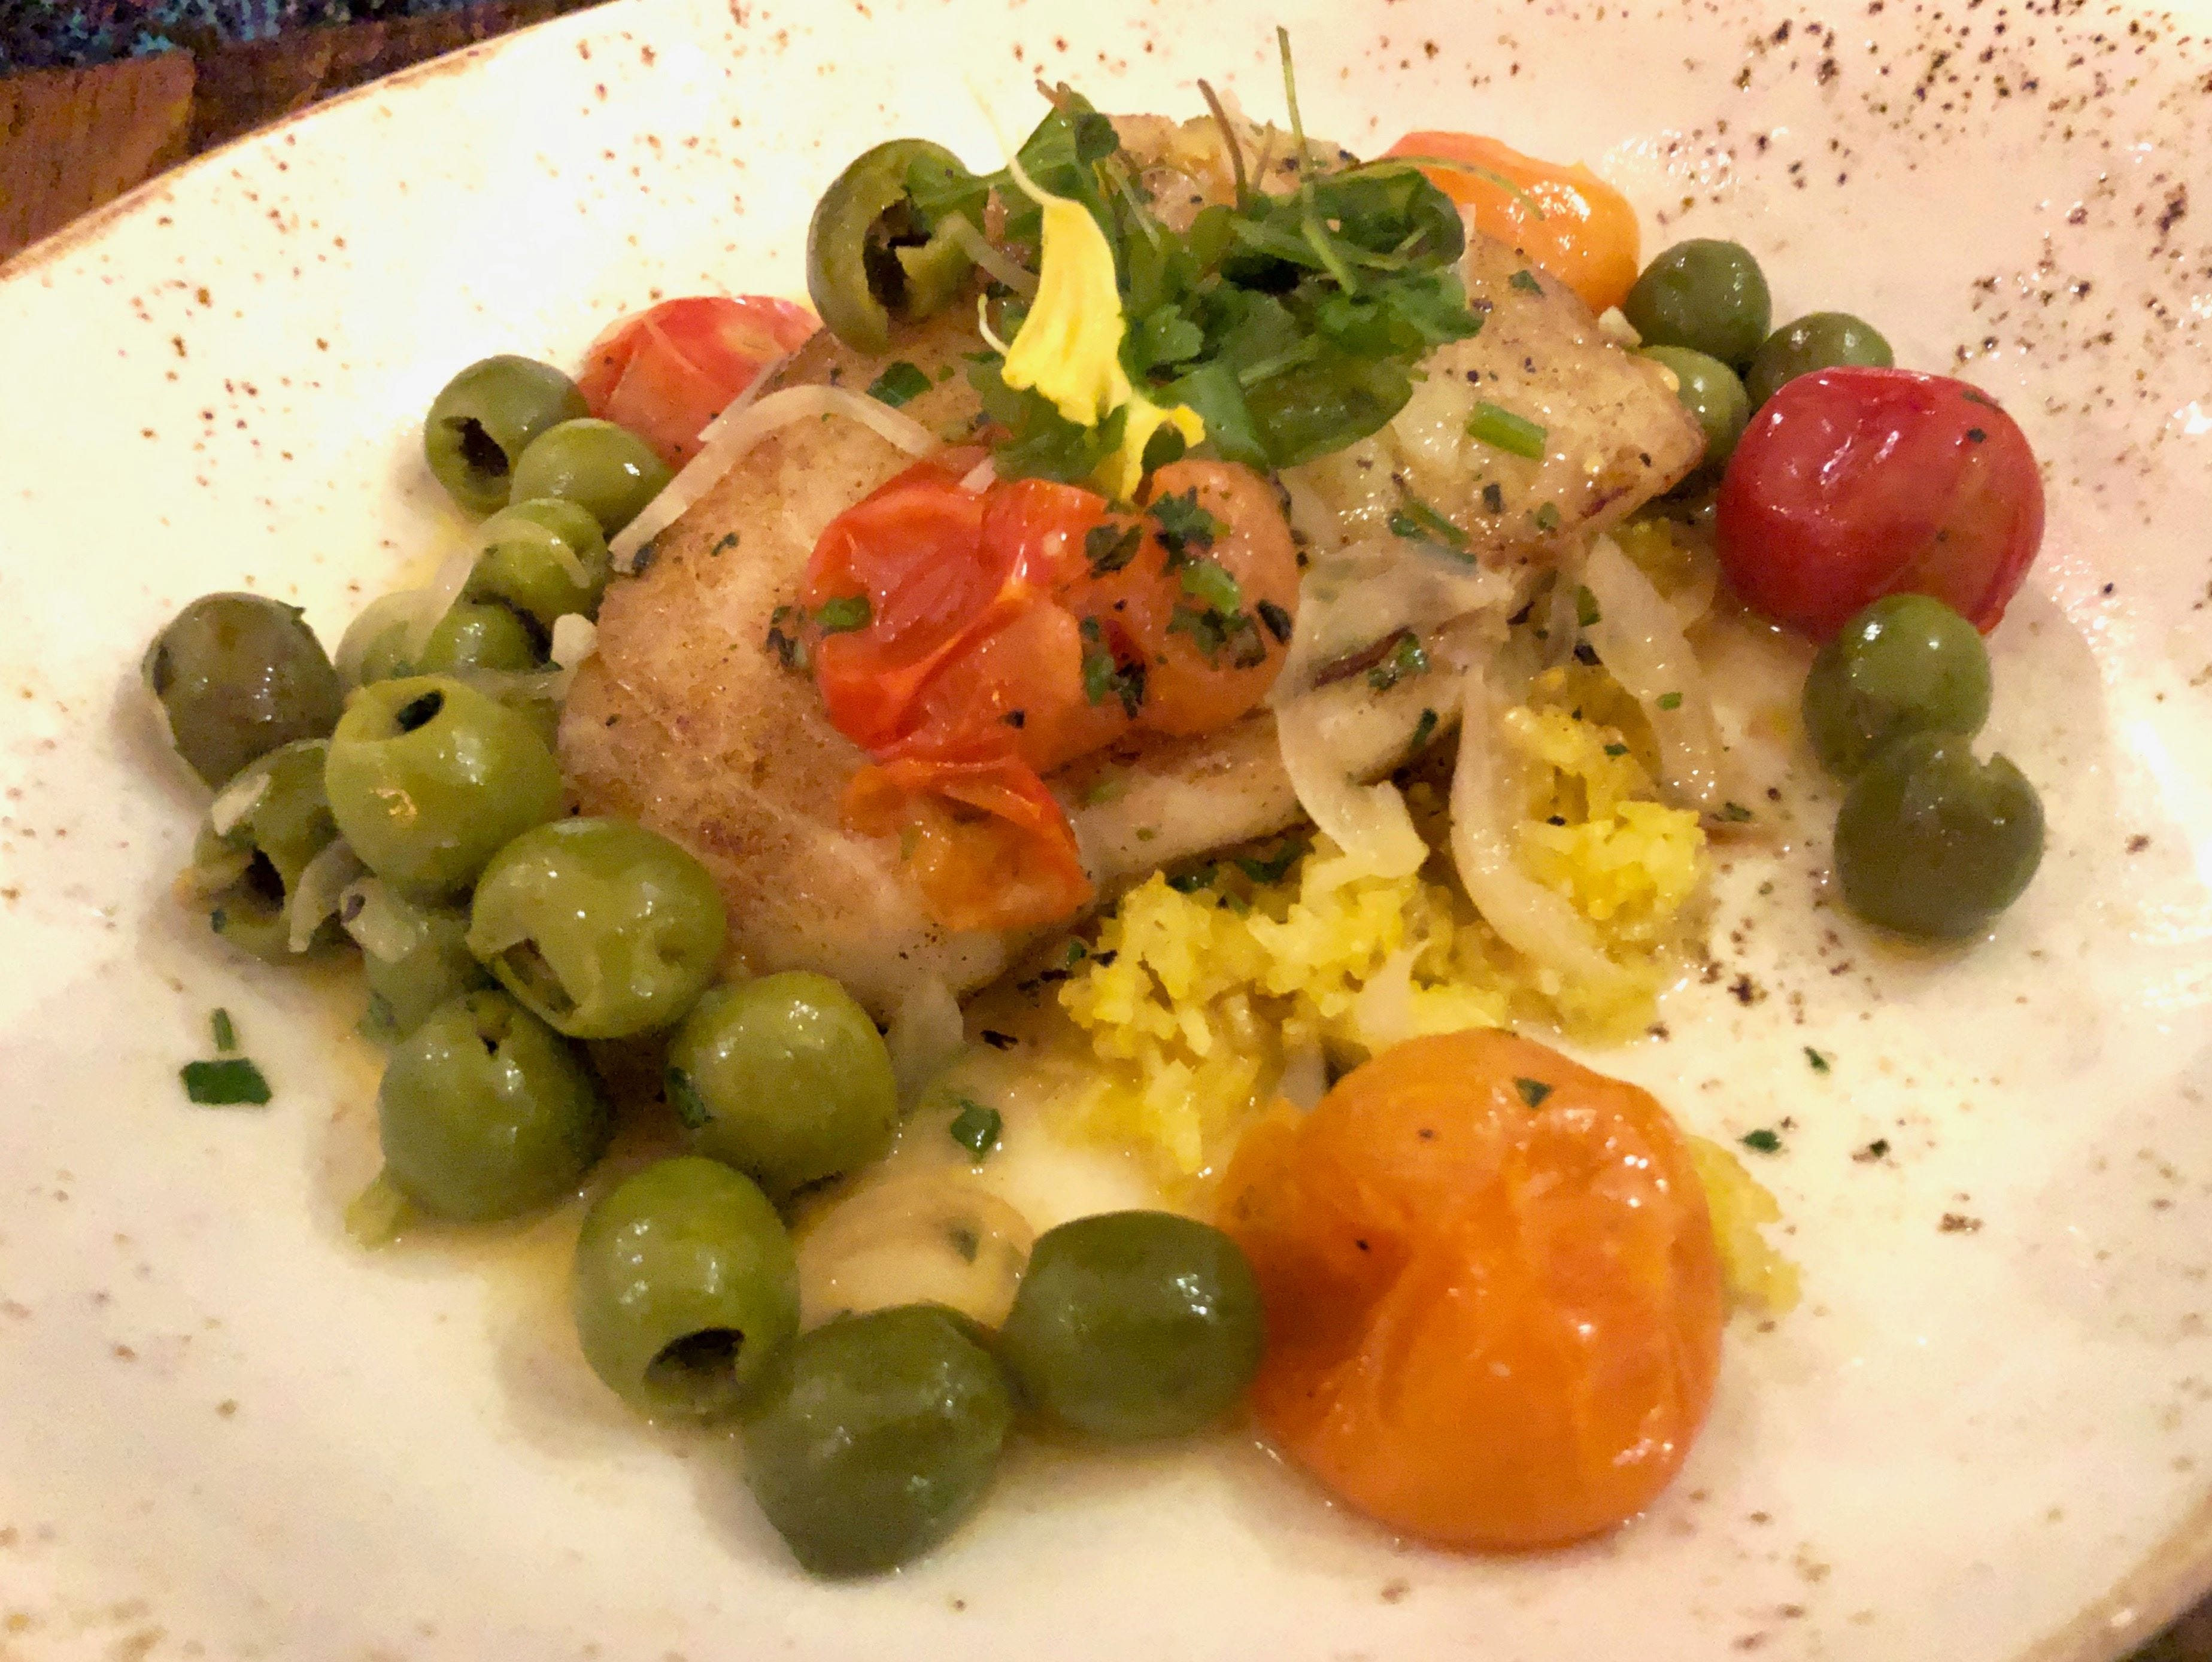 Chilean seabass is prepared Veracruz-style with Castelvetrano olives on a bed of saffron rice at Charred North in Bonita Springs.